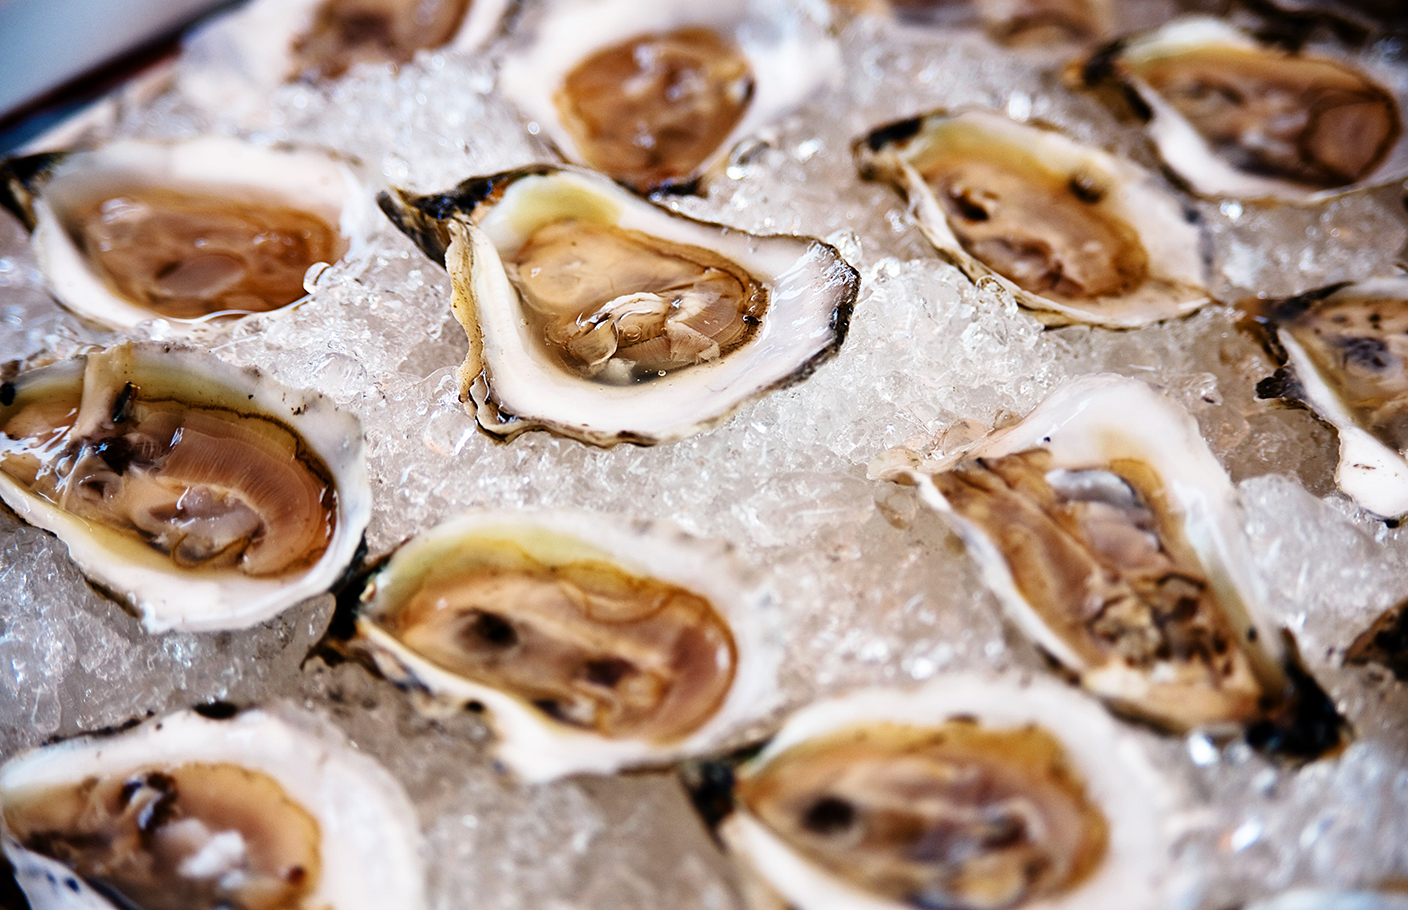 oysters_on_ice_16x20.jpg